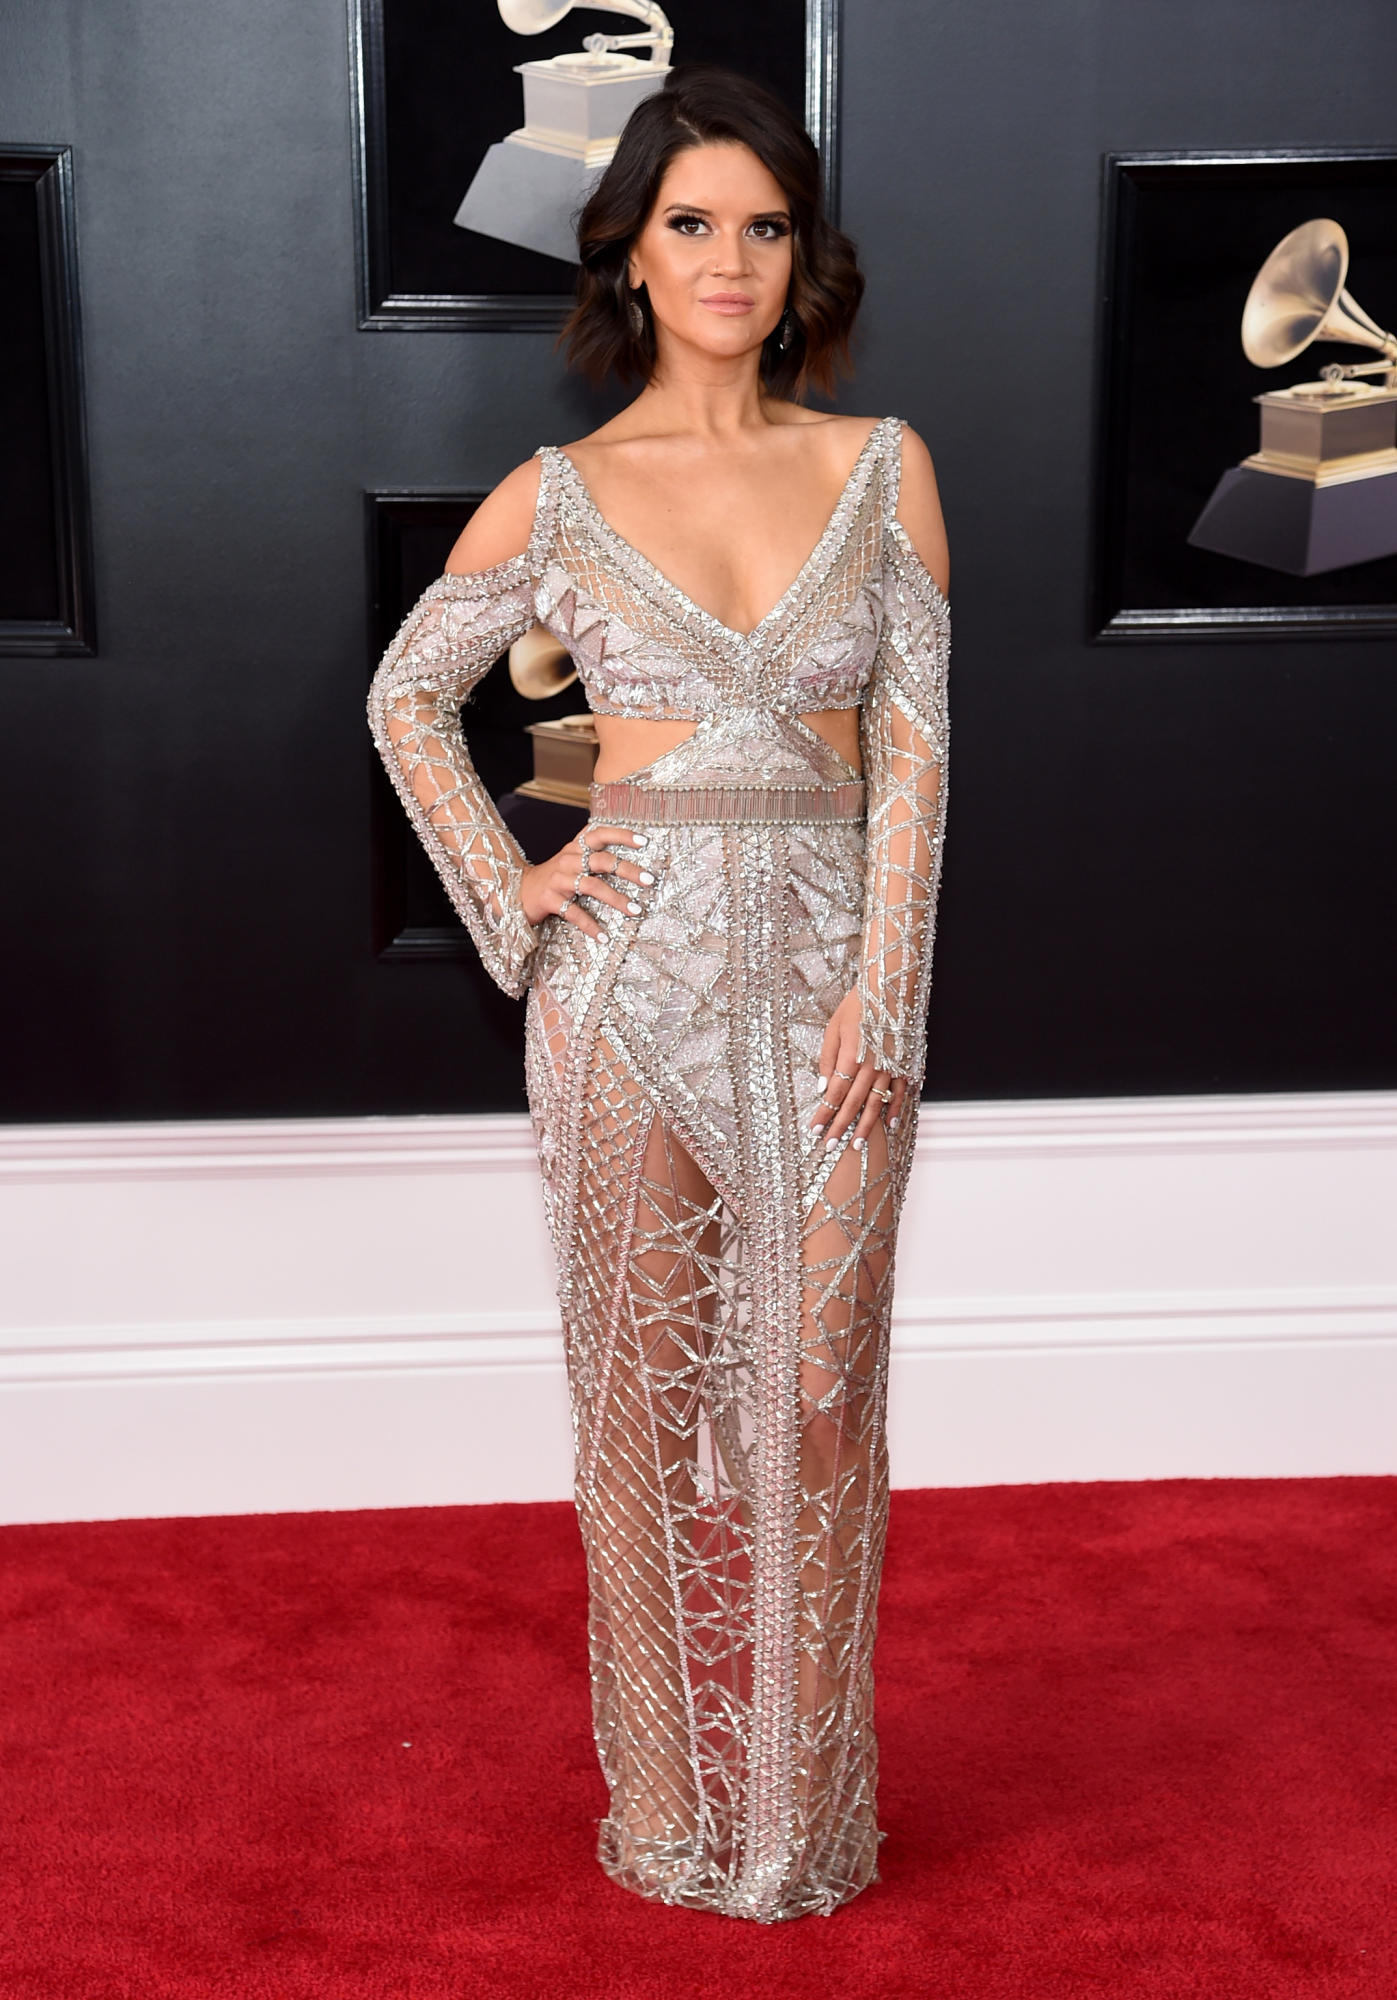 See All the Red-Carpet Looks From The 2018 Grammy Awards